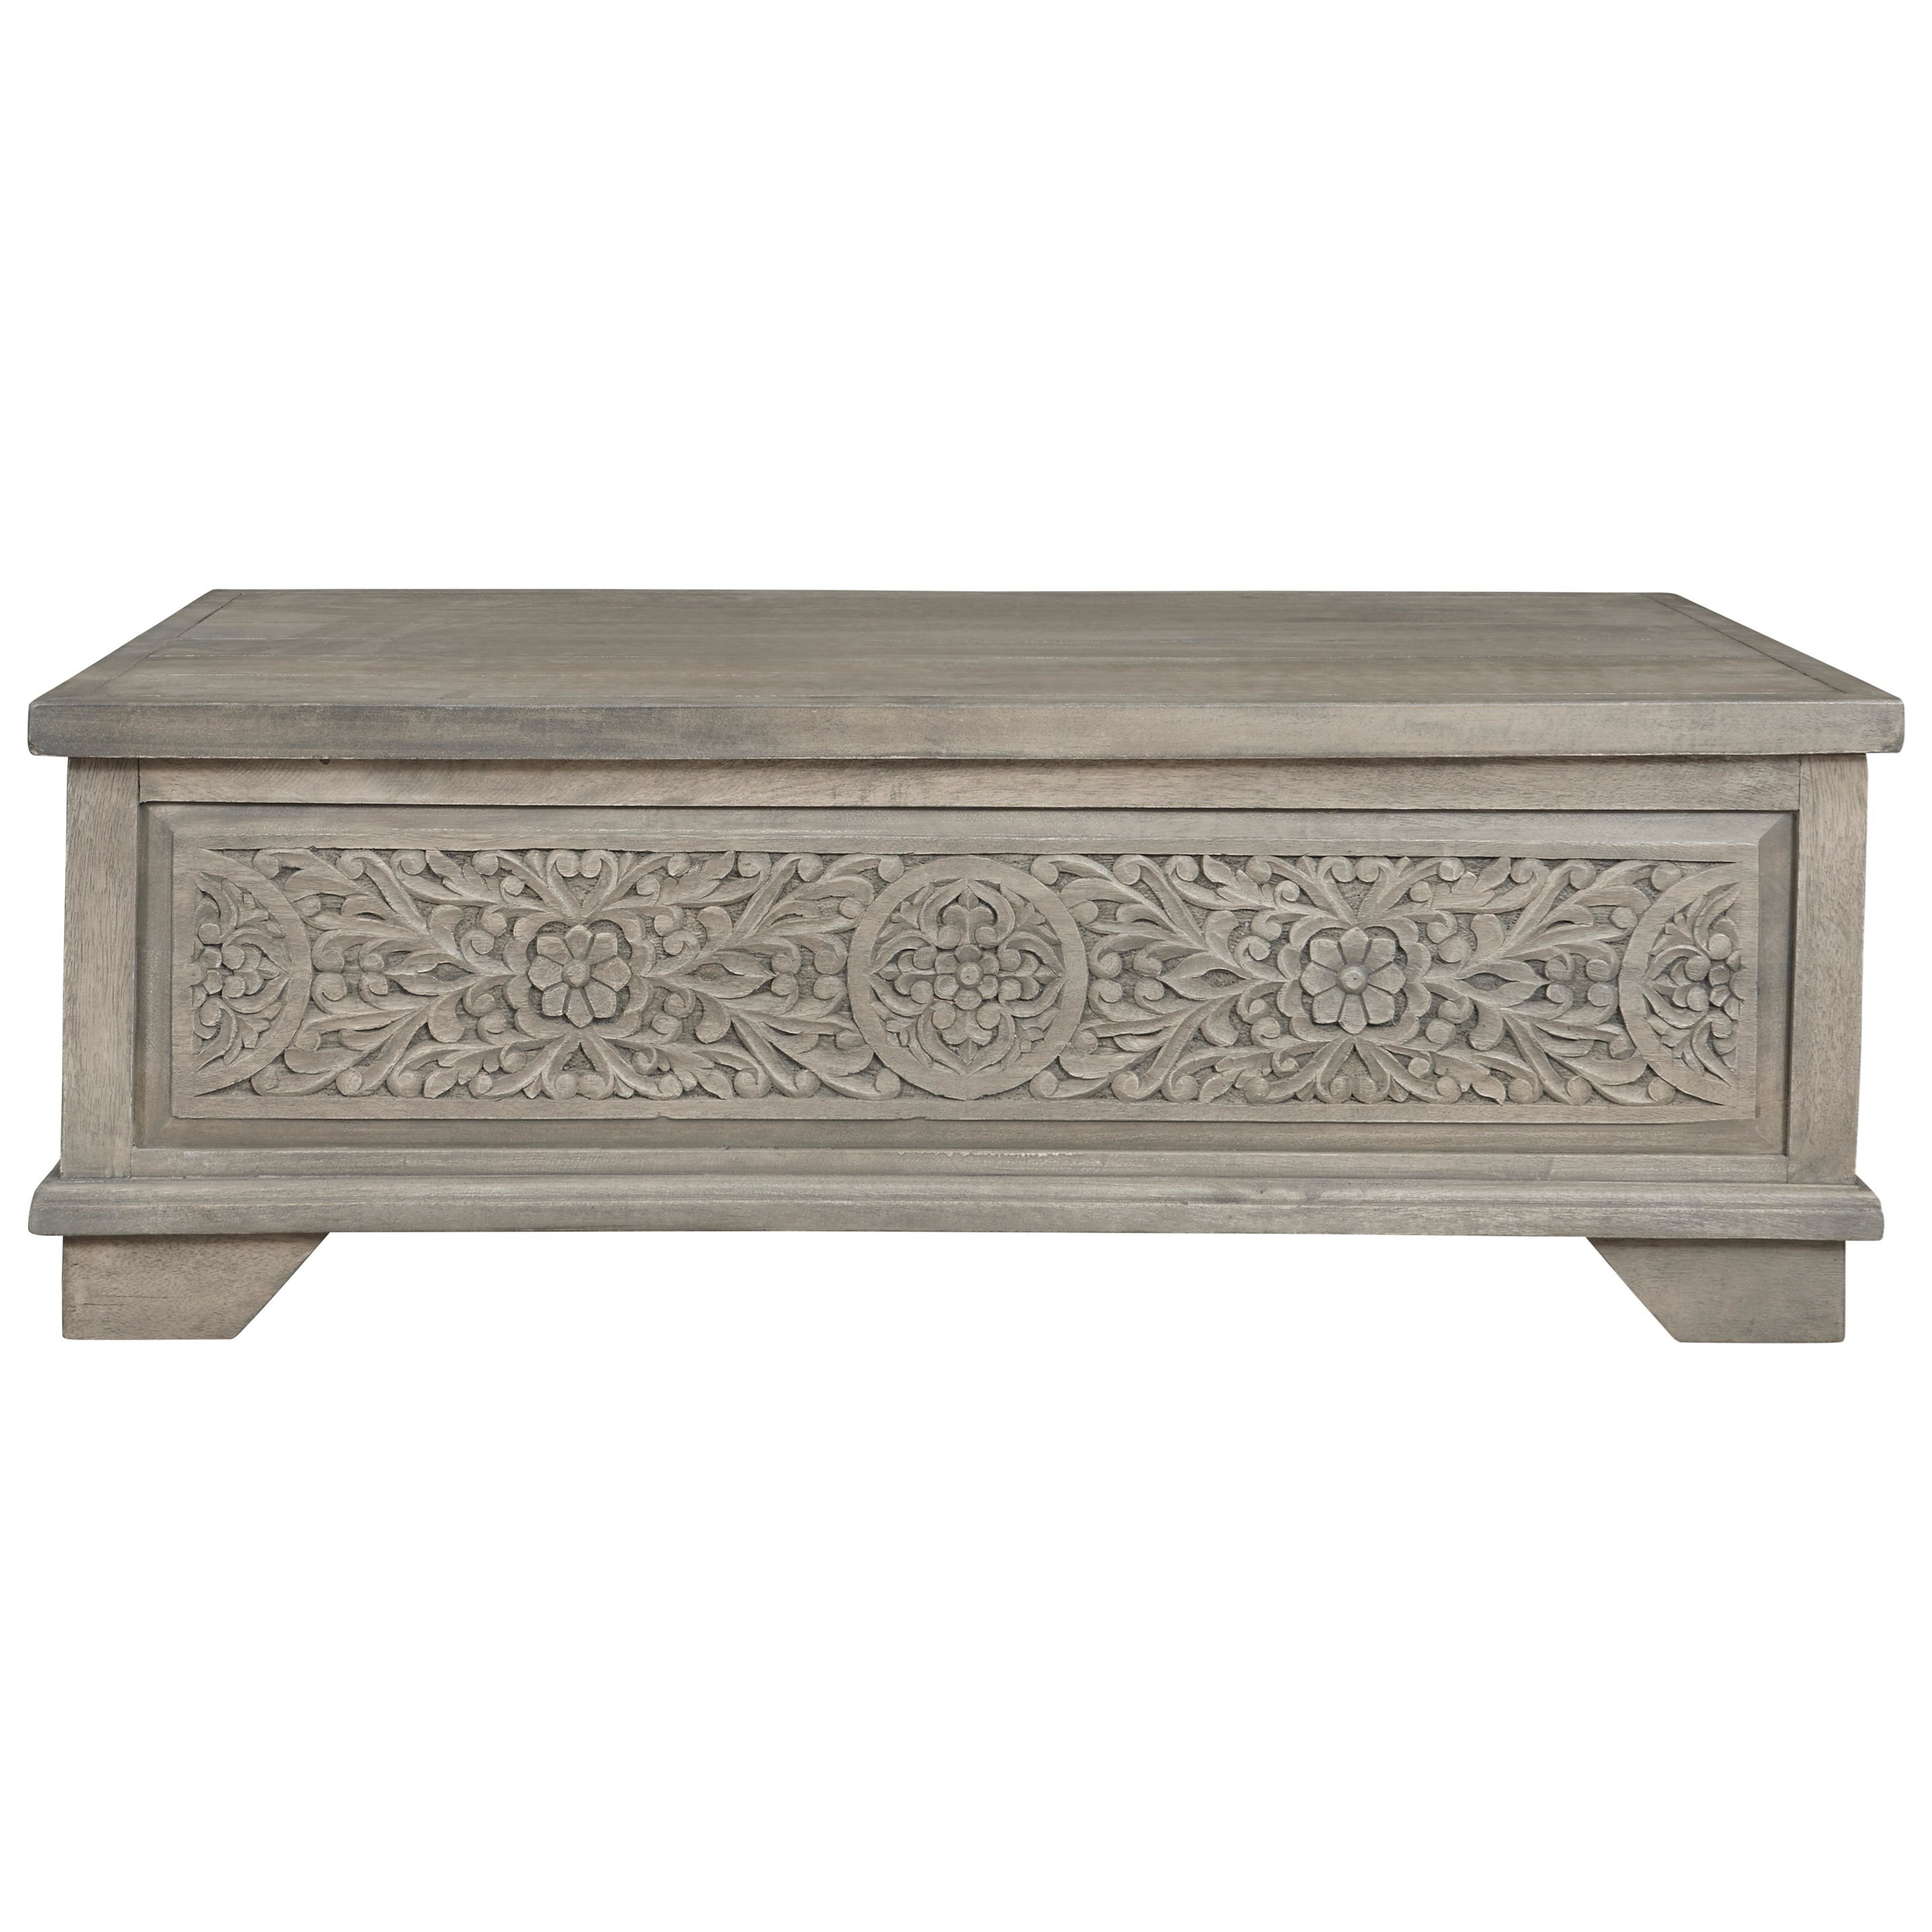 Marcilyn Lift Top Cocktail Table by Signature Design by Ashley at Godby Home Furnishings